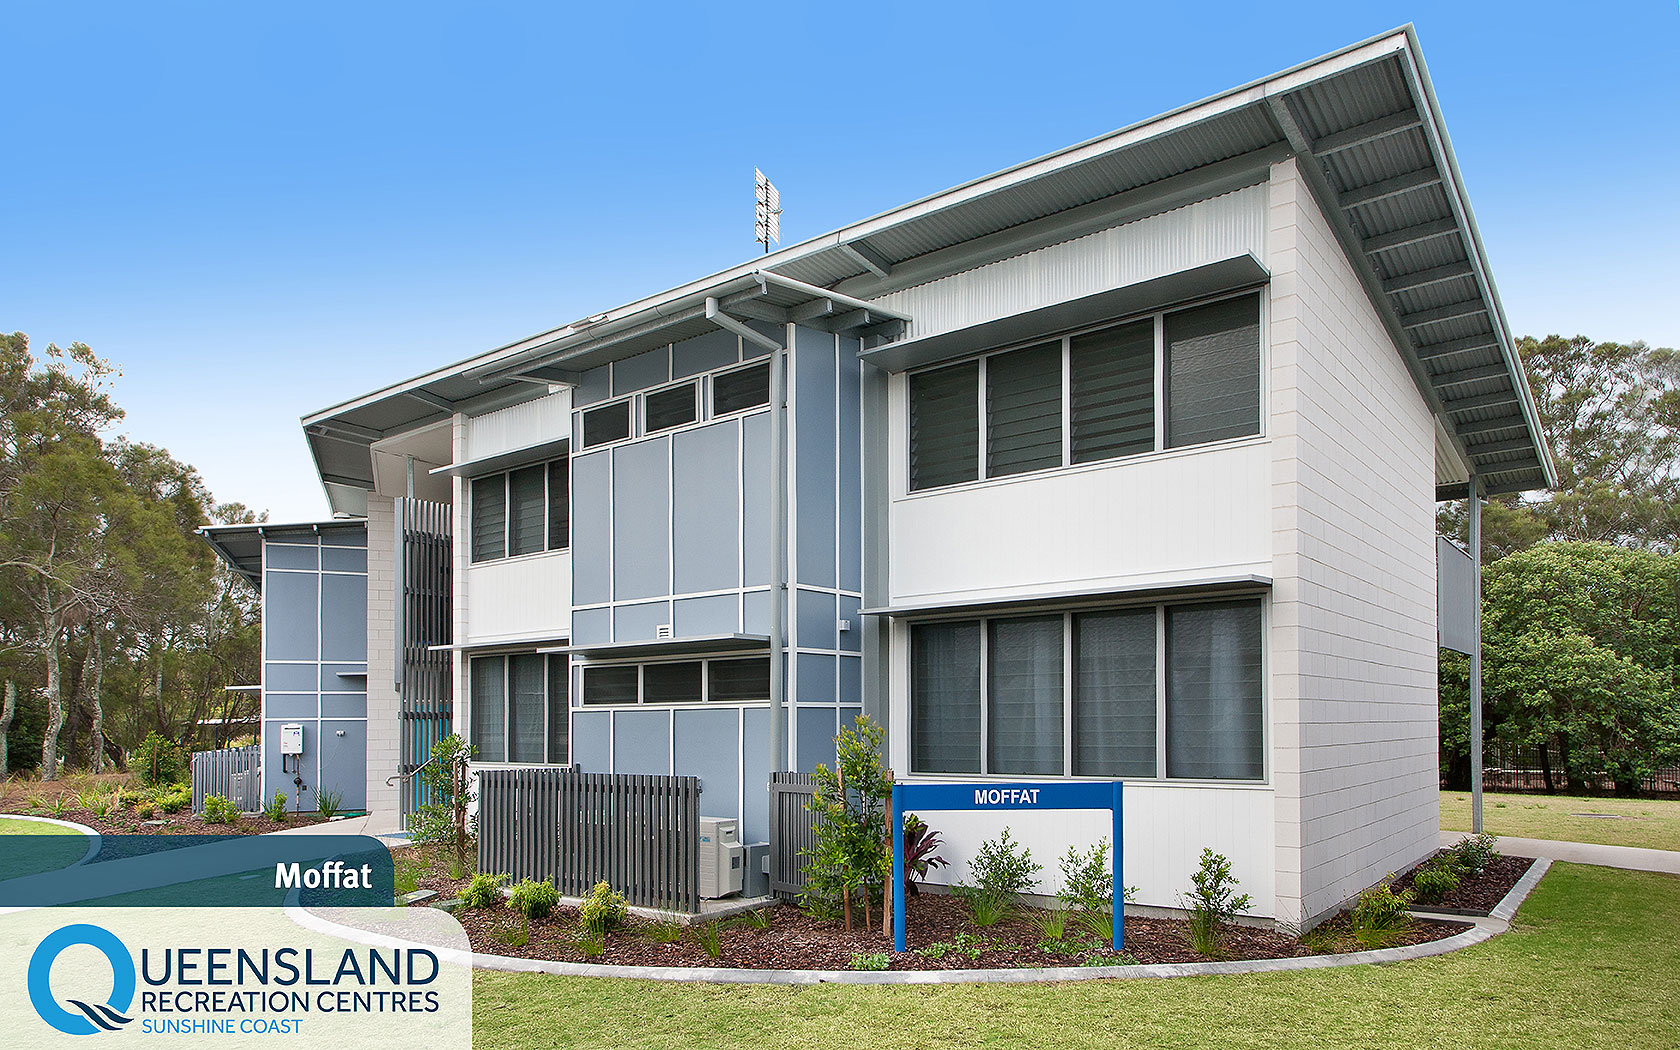 Two storey camp cabins with exterior gardens, air conditioning and walkways at the Sunshine Coast Recreation Centre